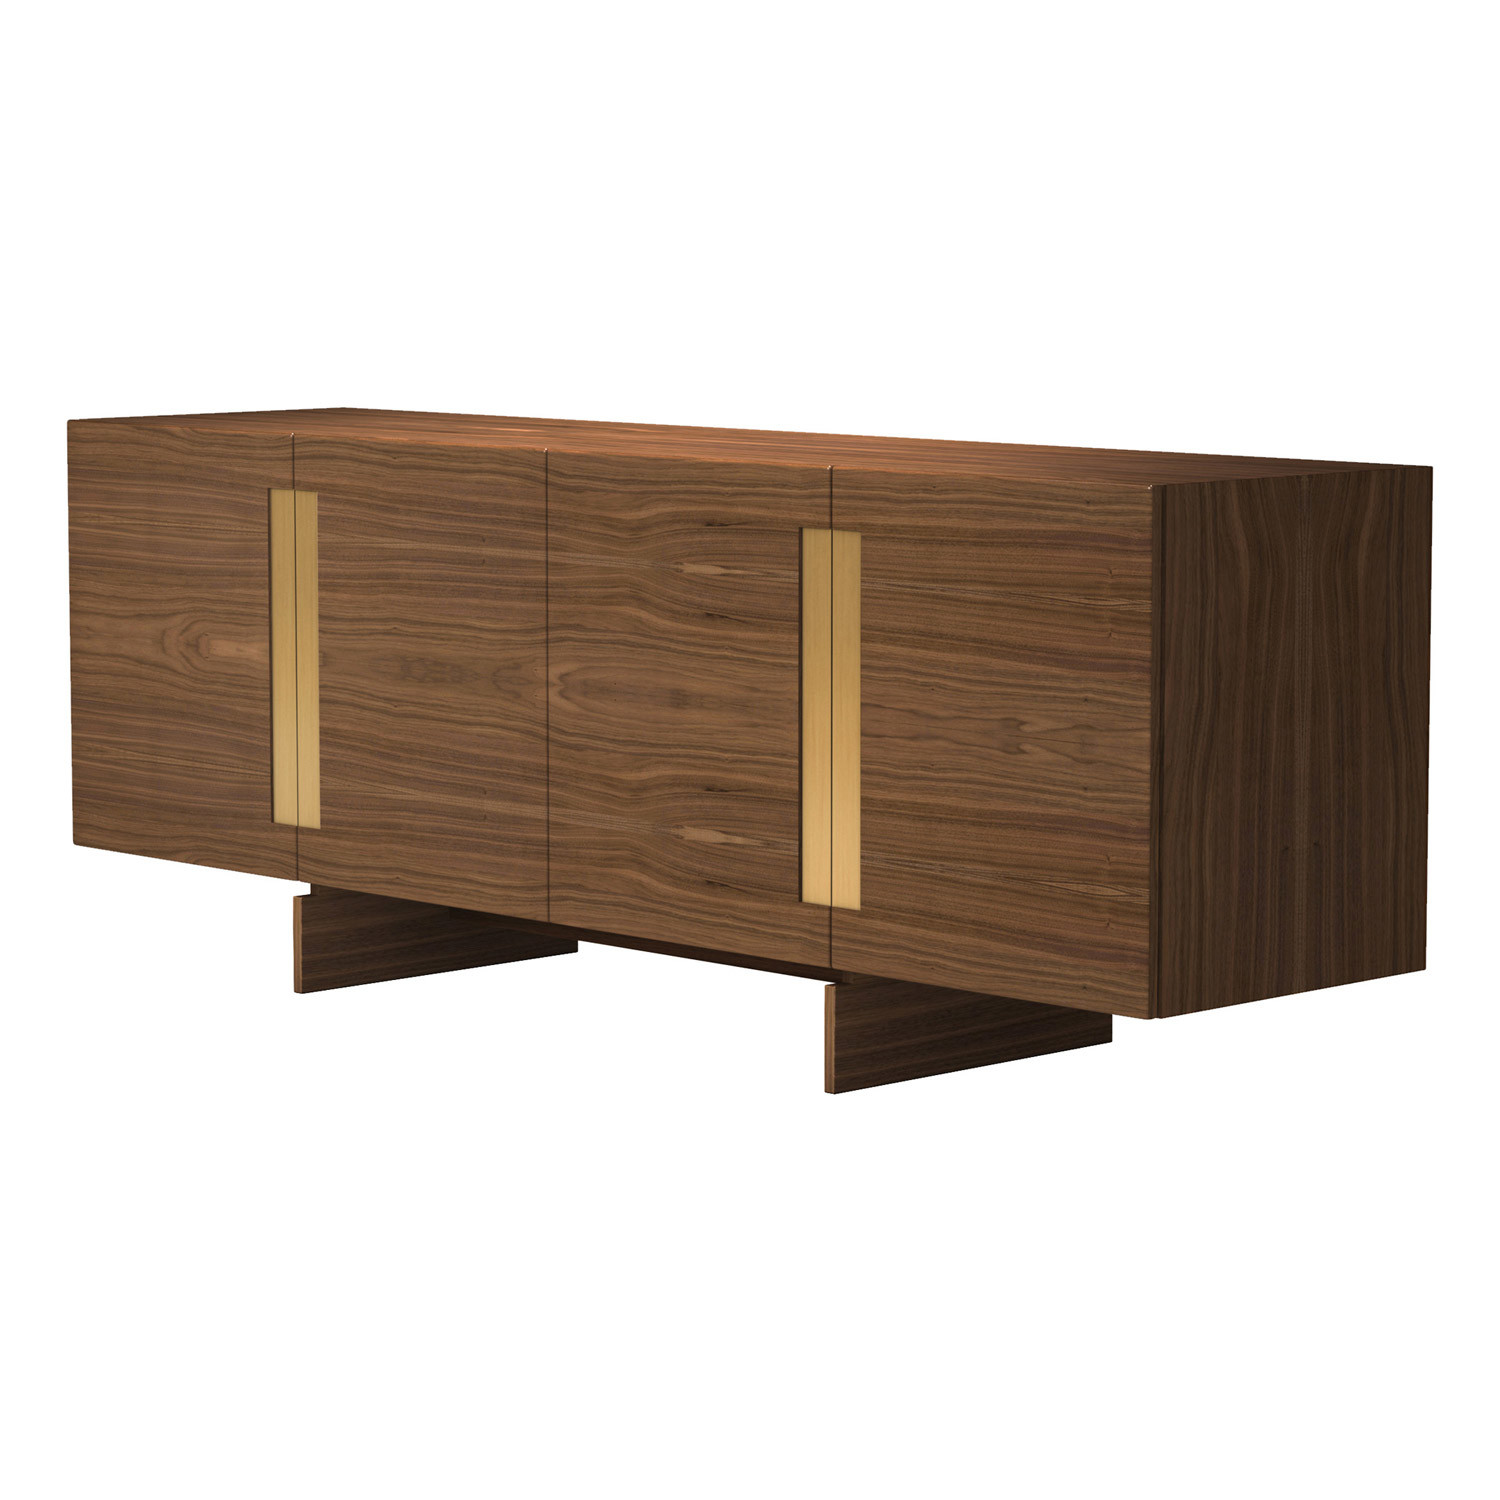 Brixton sideboard natural oak modloft touch of modern for Sideboard natur